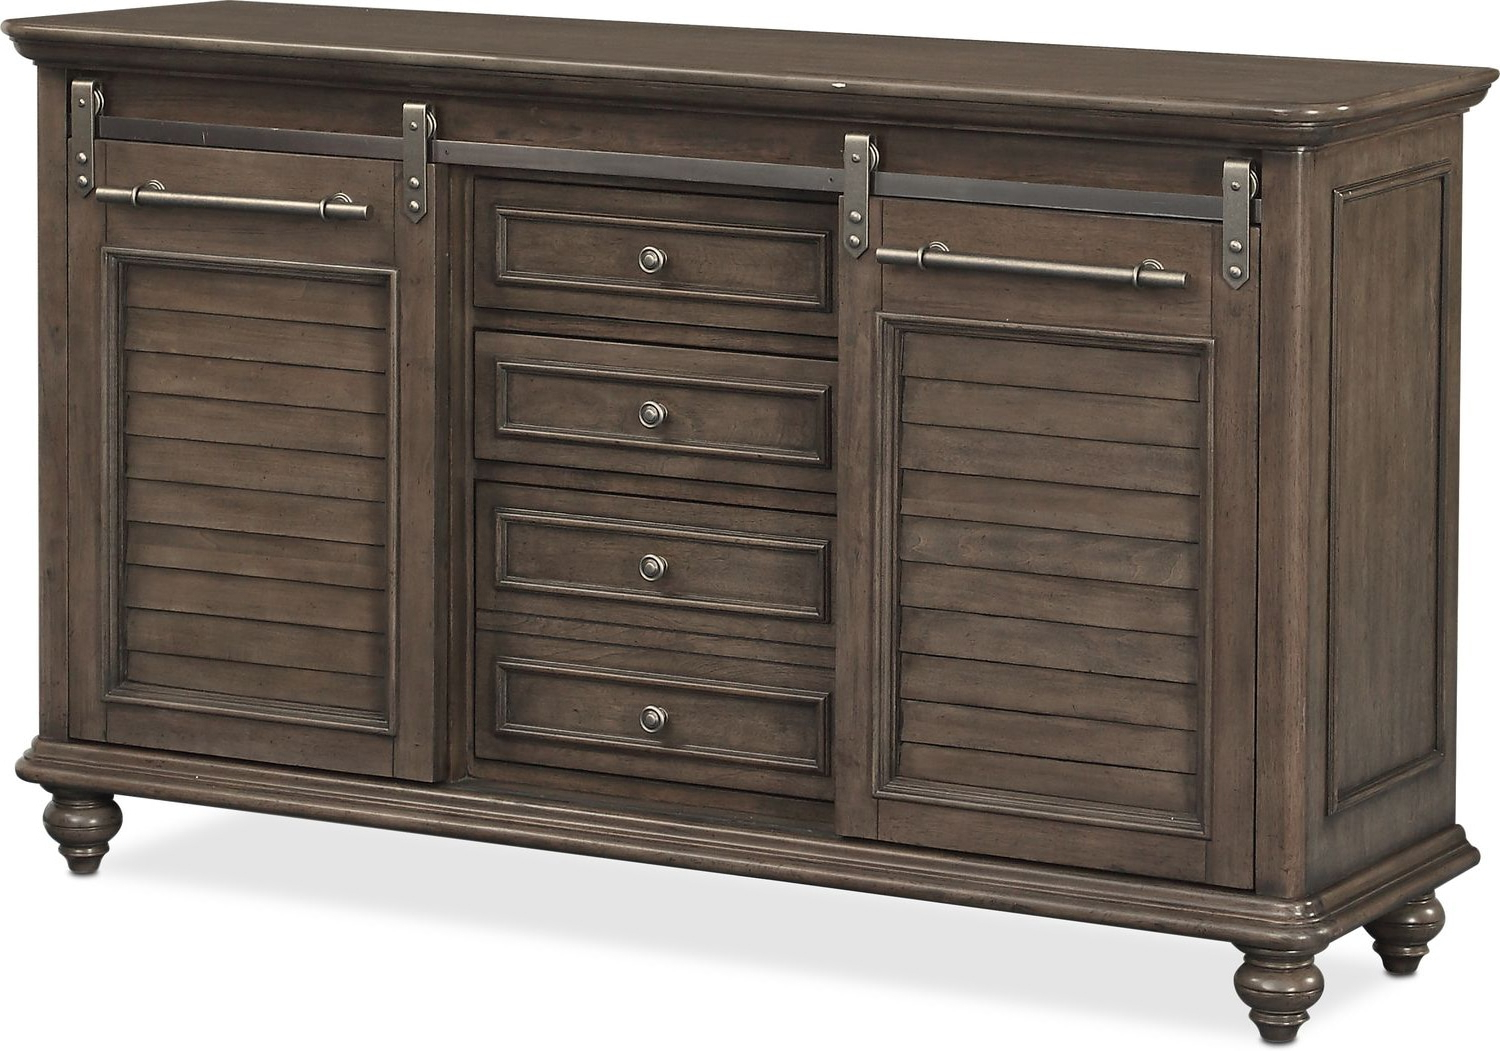 Buffet & Sideboard Cabinets | American Signature Pertaining To Kratz Sideboards (View 3 of 20)